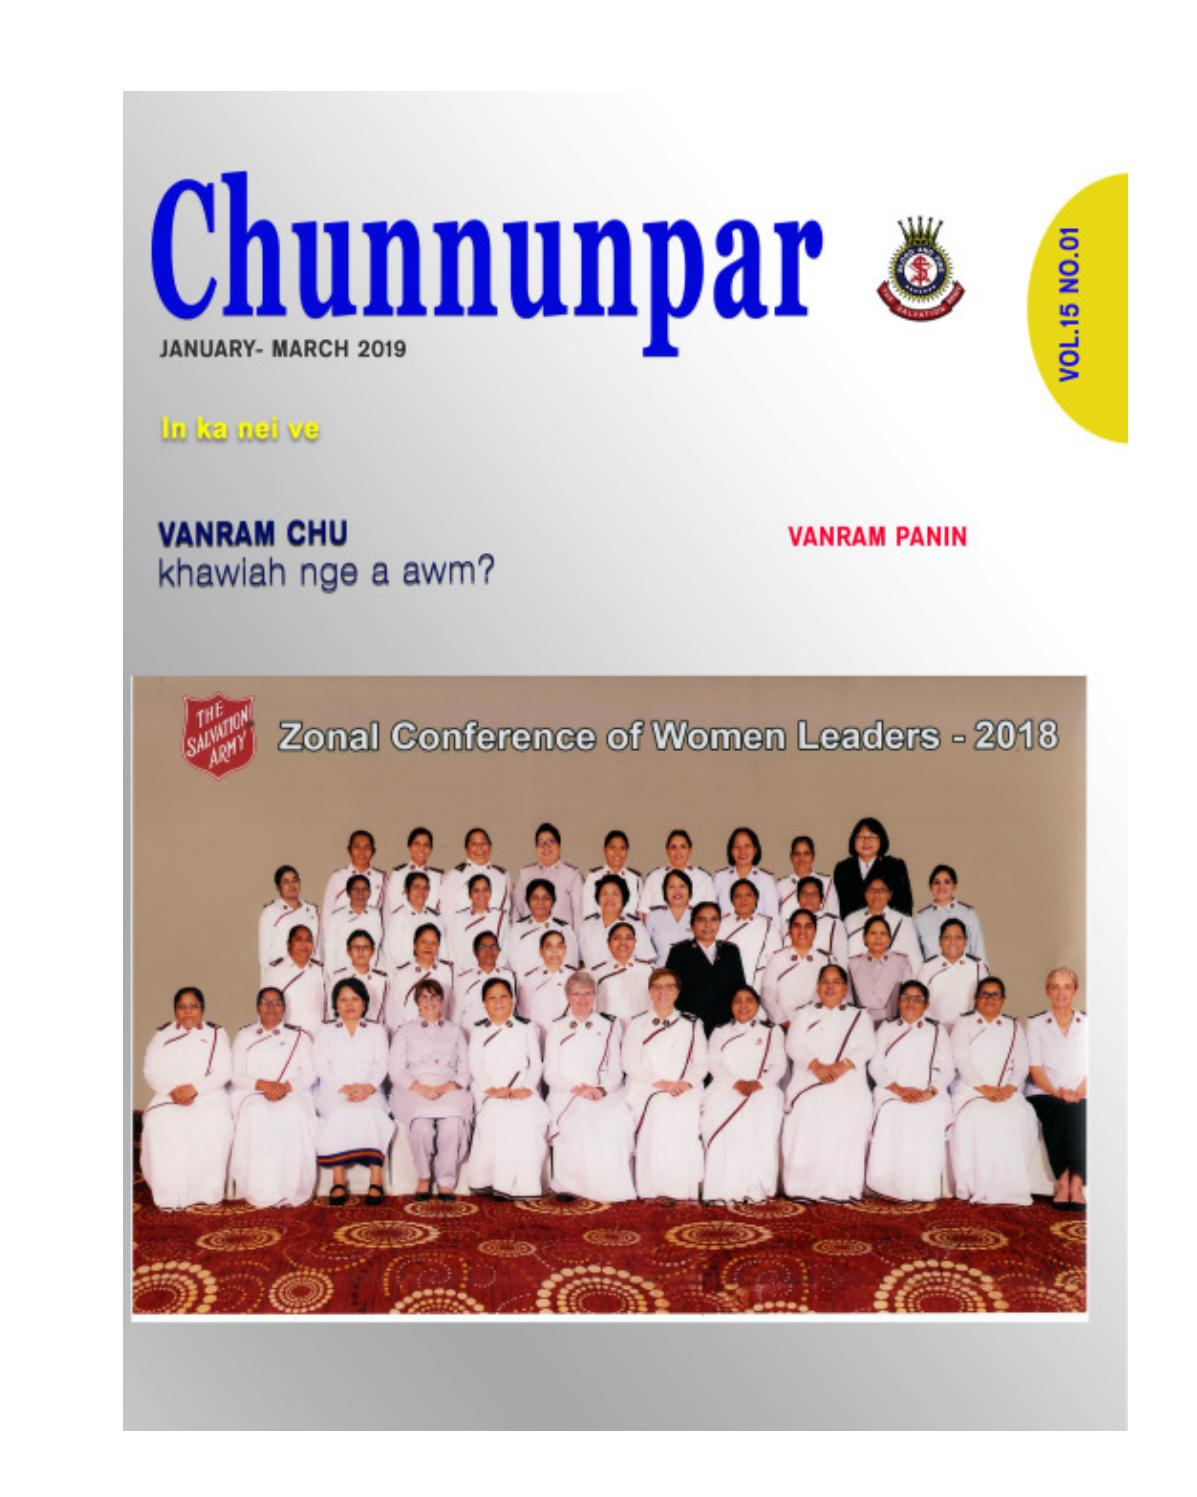 Chunnunpar January March 2019 By Salvationarmyiet Issuu He combs his hair and goes to meet his friend anna (13). chunnunpar january march 2019 by